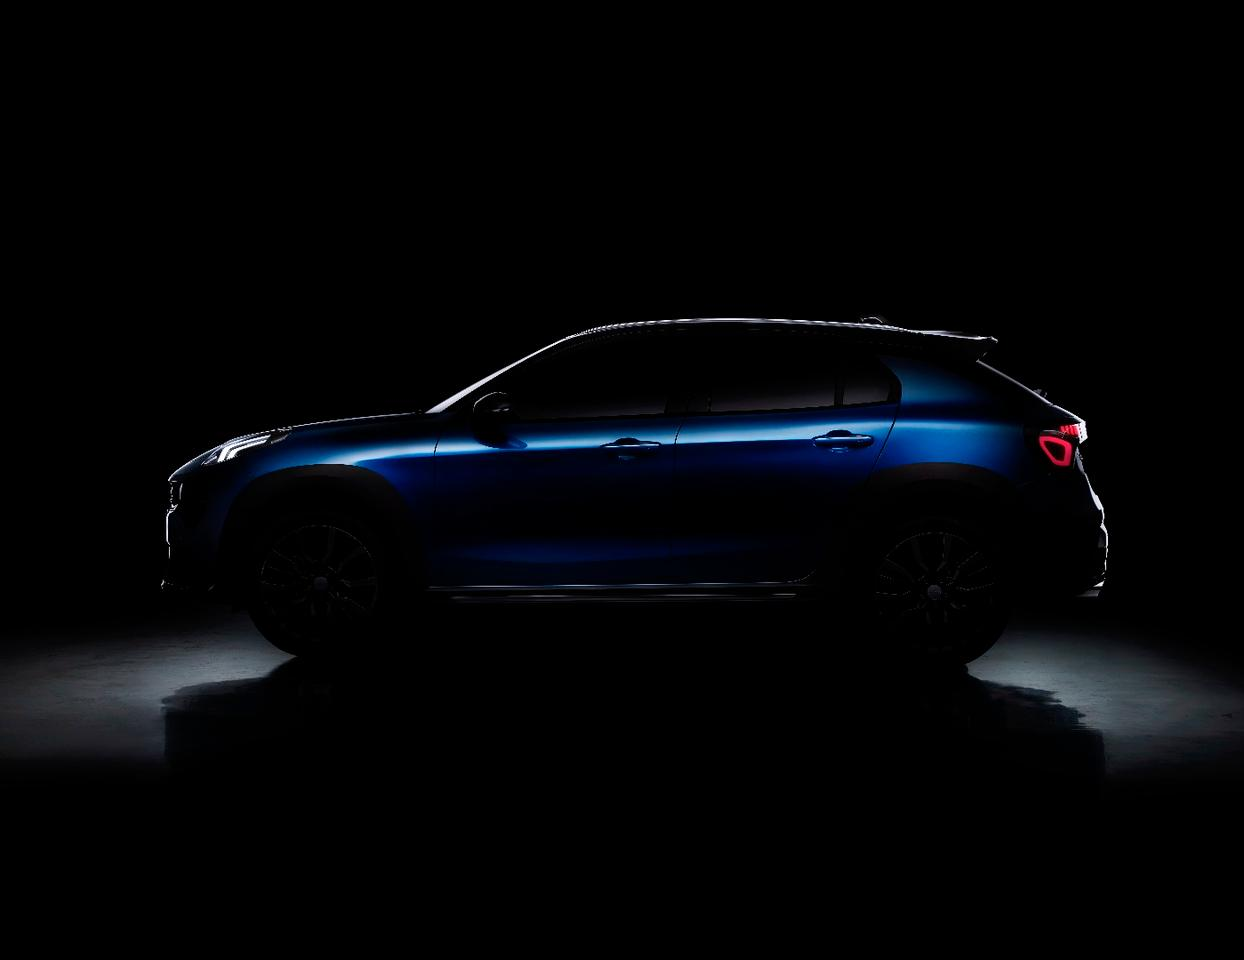 A pre-reveal teaser image of the new Lynk & Co 02